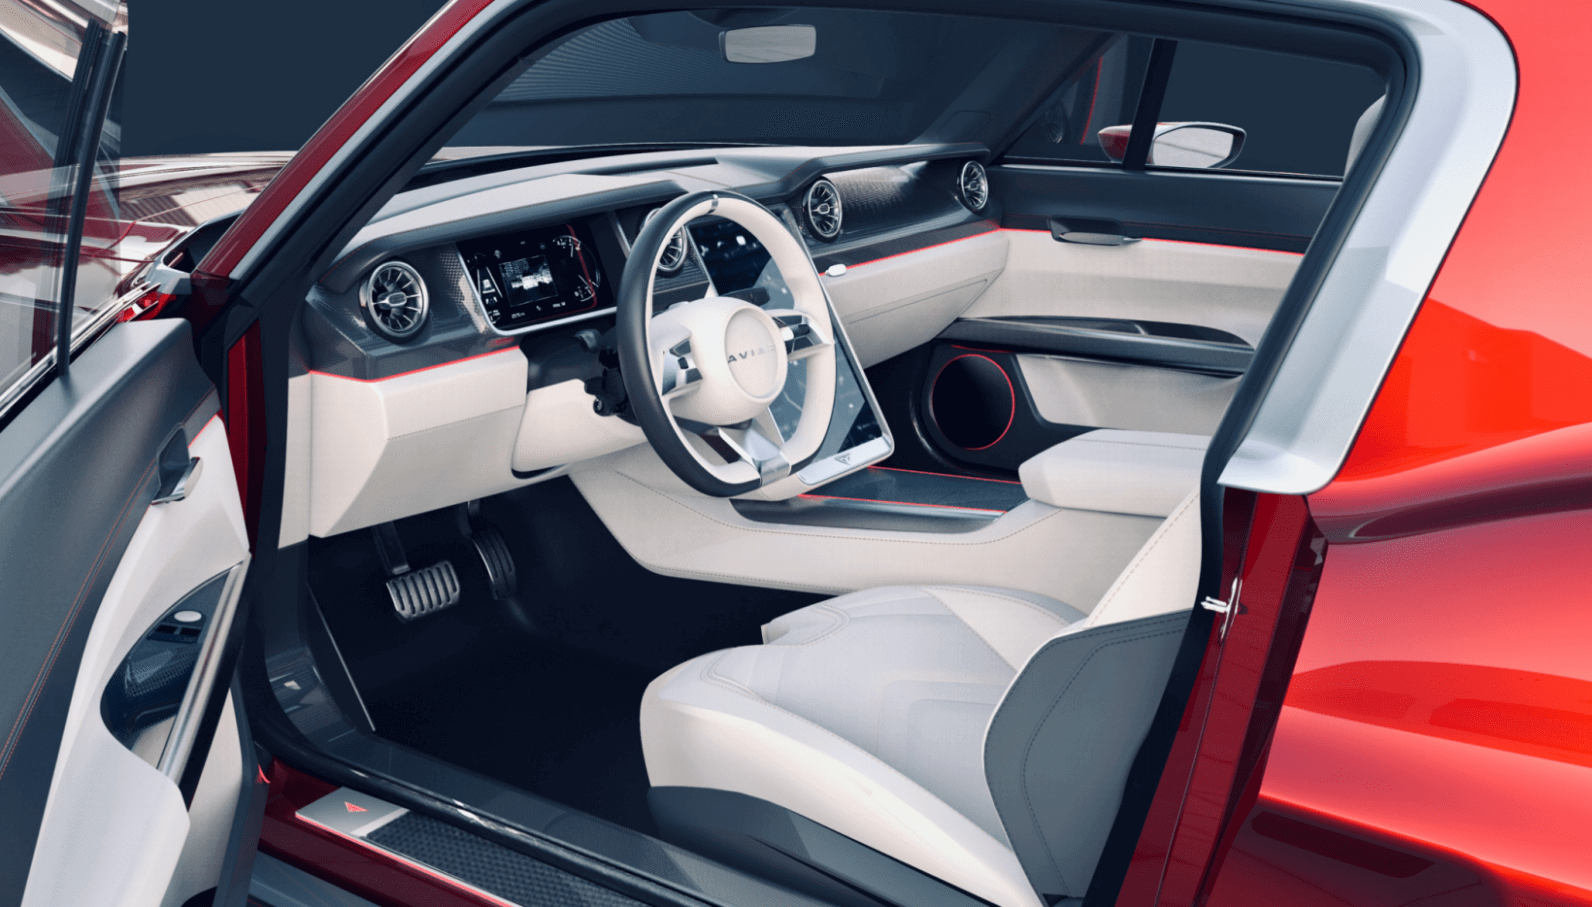 Ford_Mustang_interiors